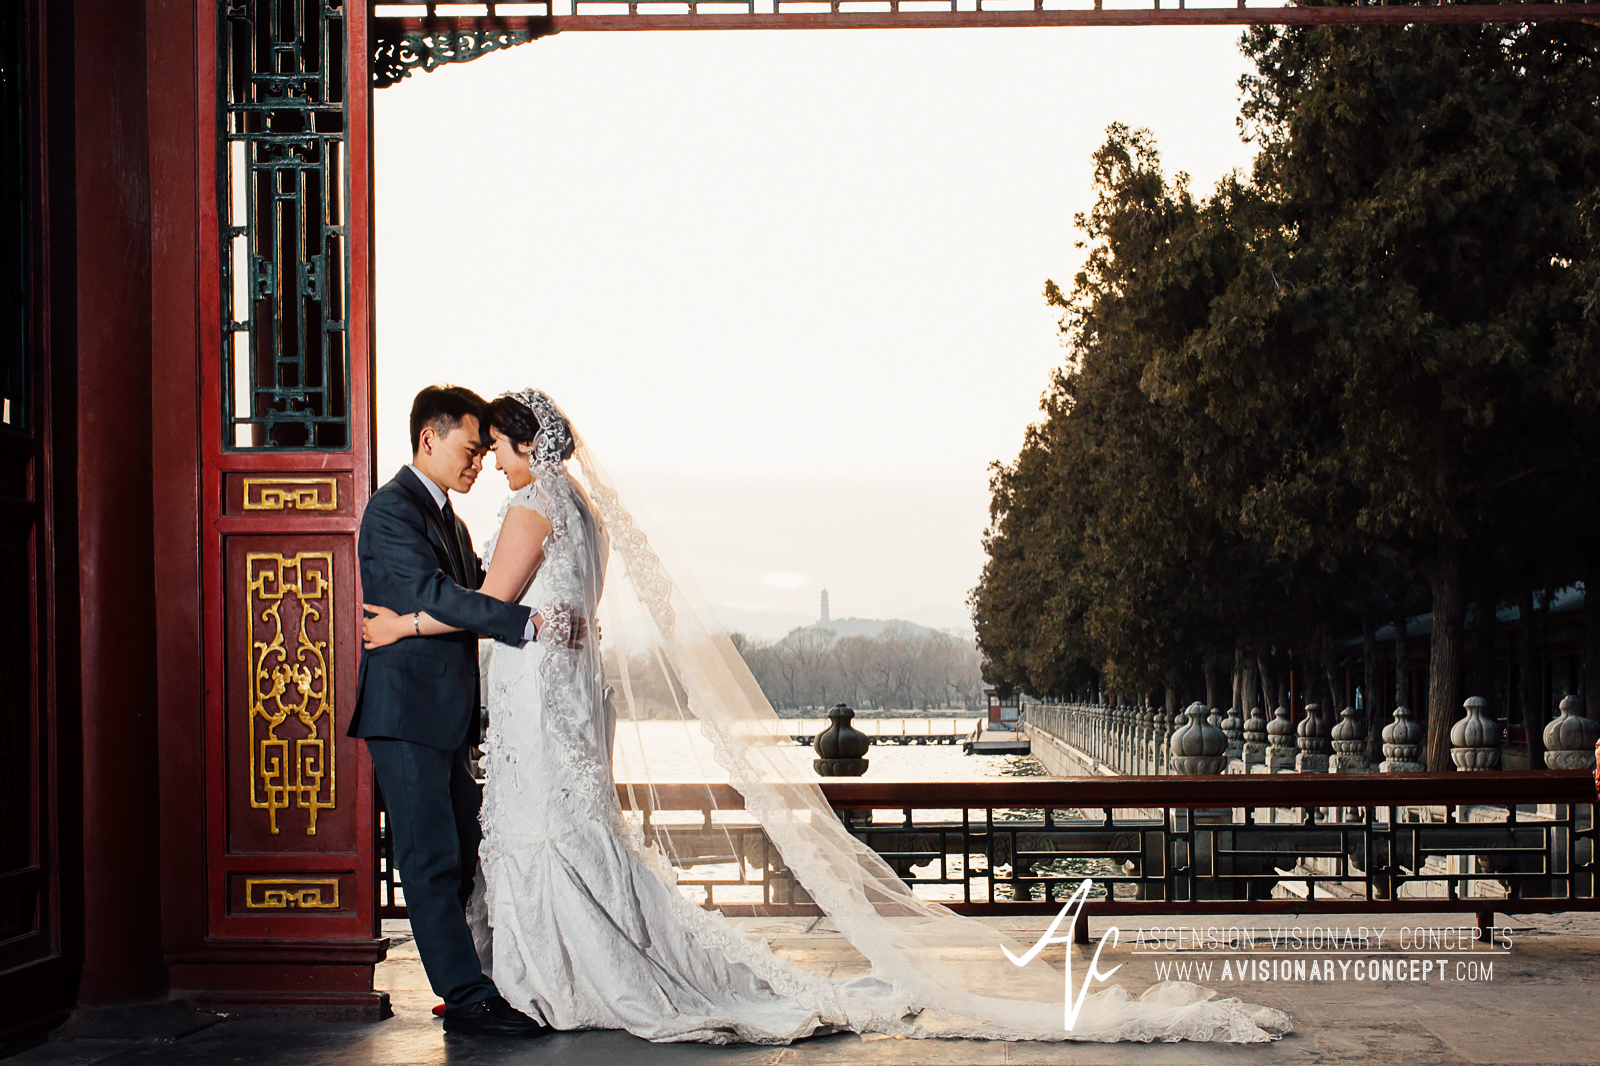 International Wedding Photography - Beijing China Summer Palace Destination Wedding Photography Pre-Wedding Photography Bride & Groom